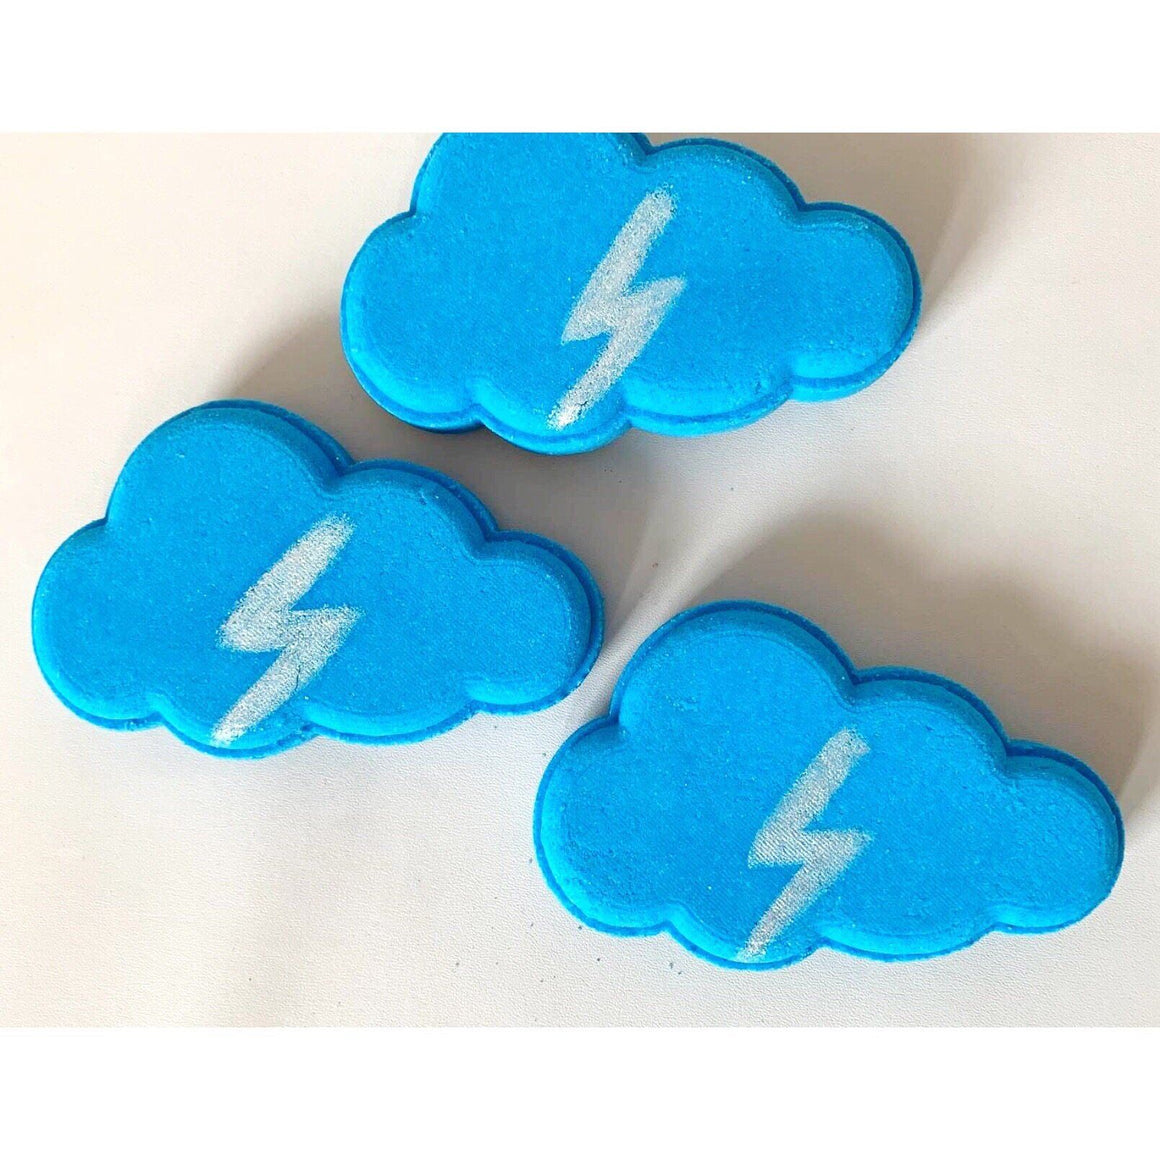 BATH FIZZY - COLOURBLAST JUMBO STORM CLOUD, BATH, Crafted Bath - Bon + Co. Party Studio